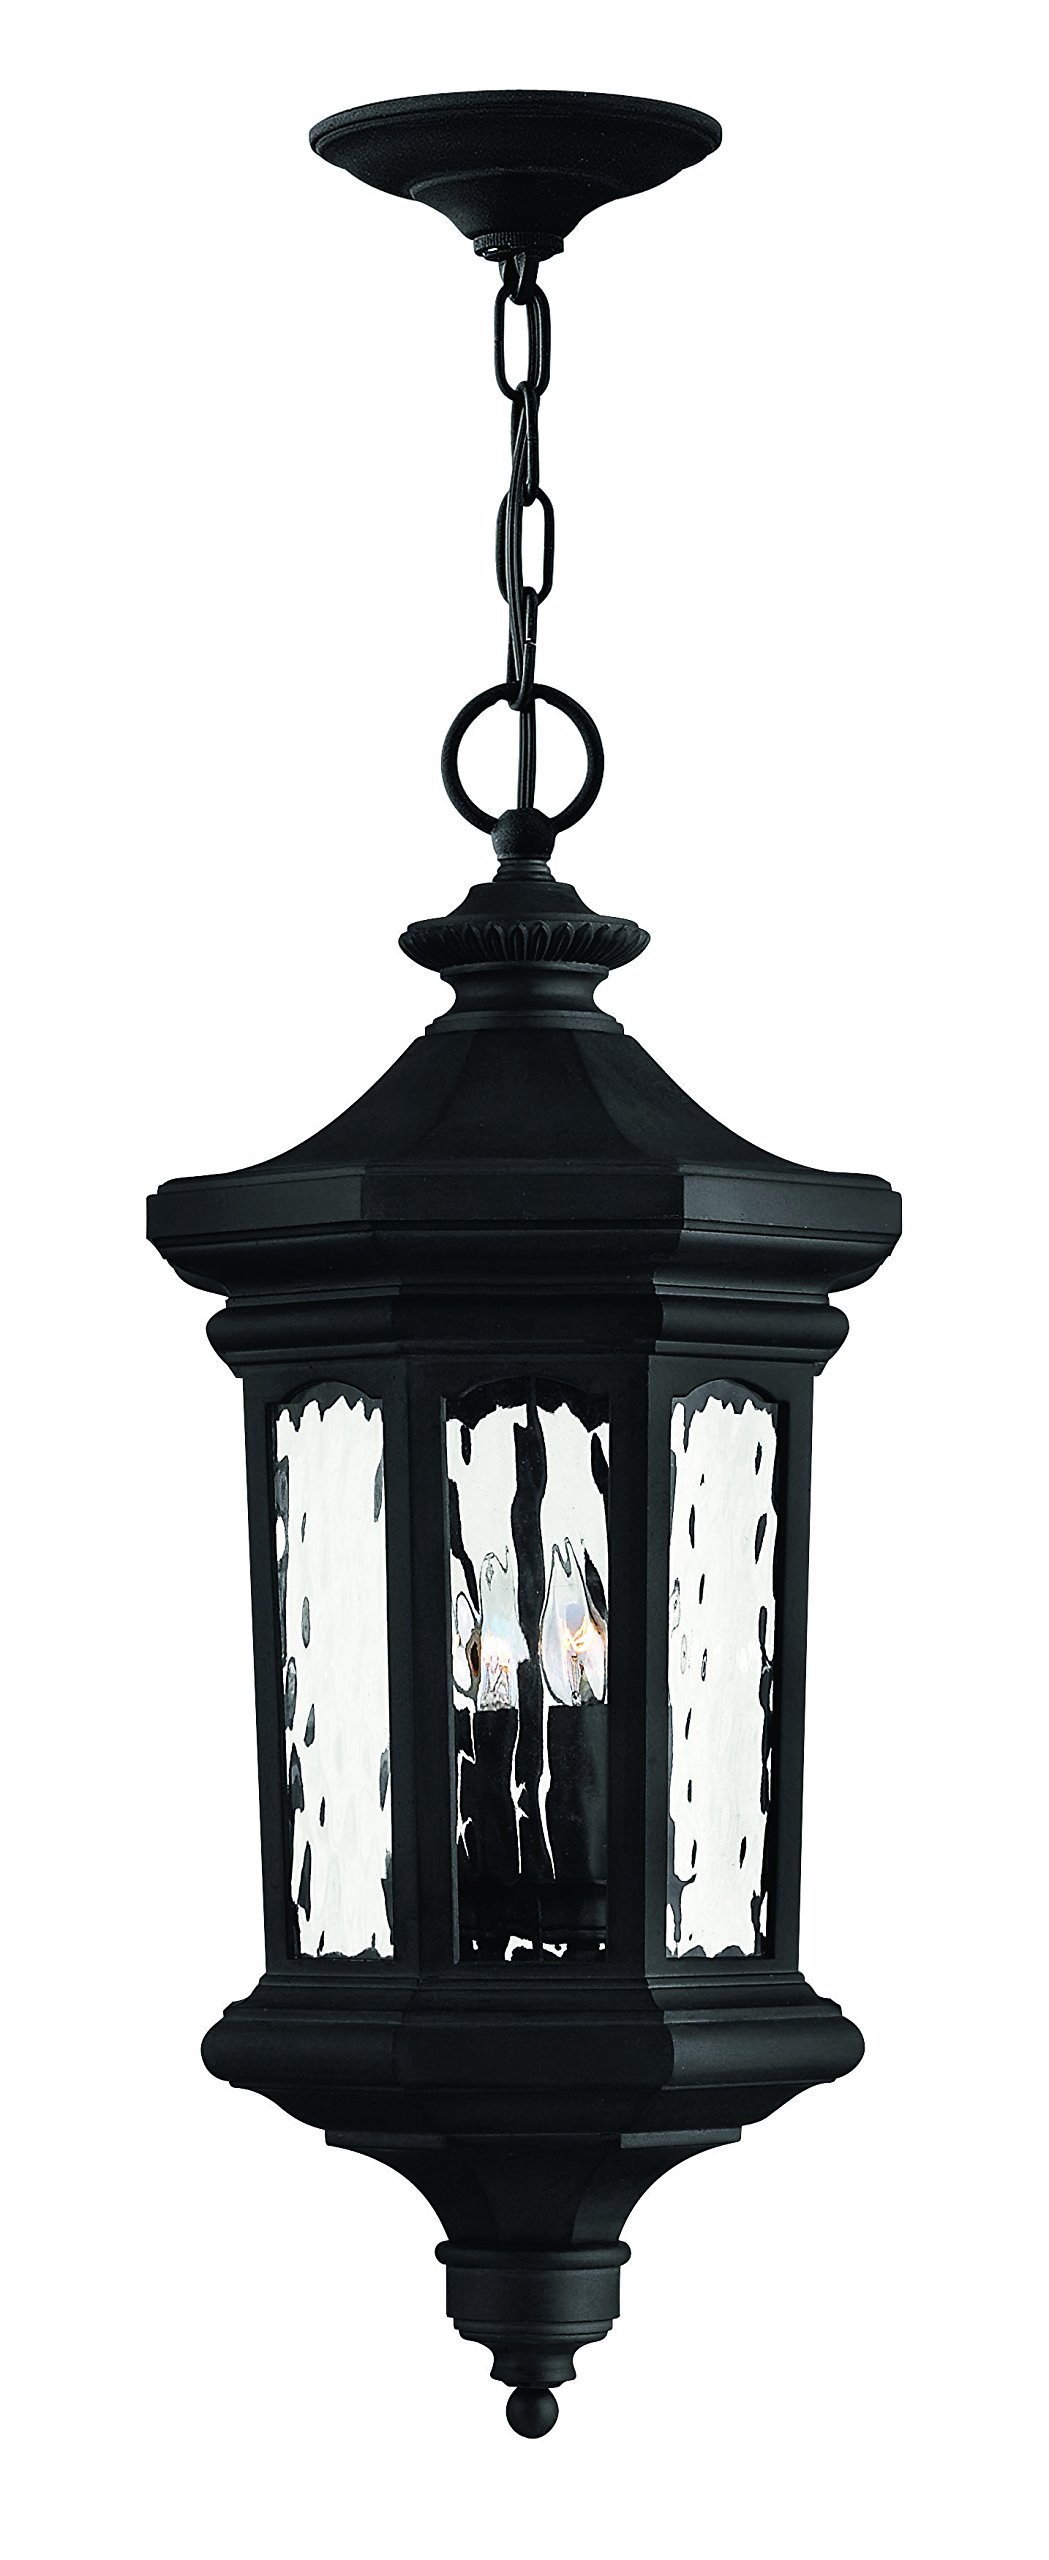 Hinkley 1602MB Traditional Four Light Hanging Lantern from Raley collection in Blackfinish,